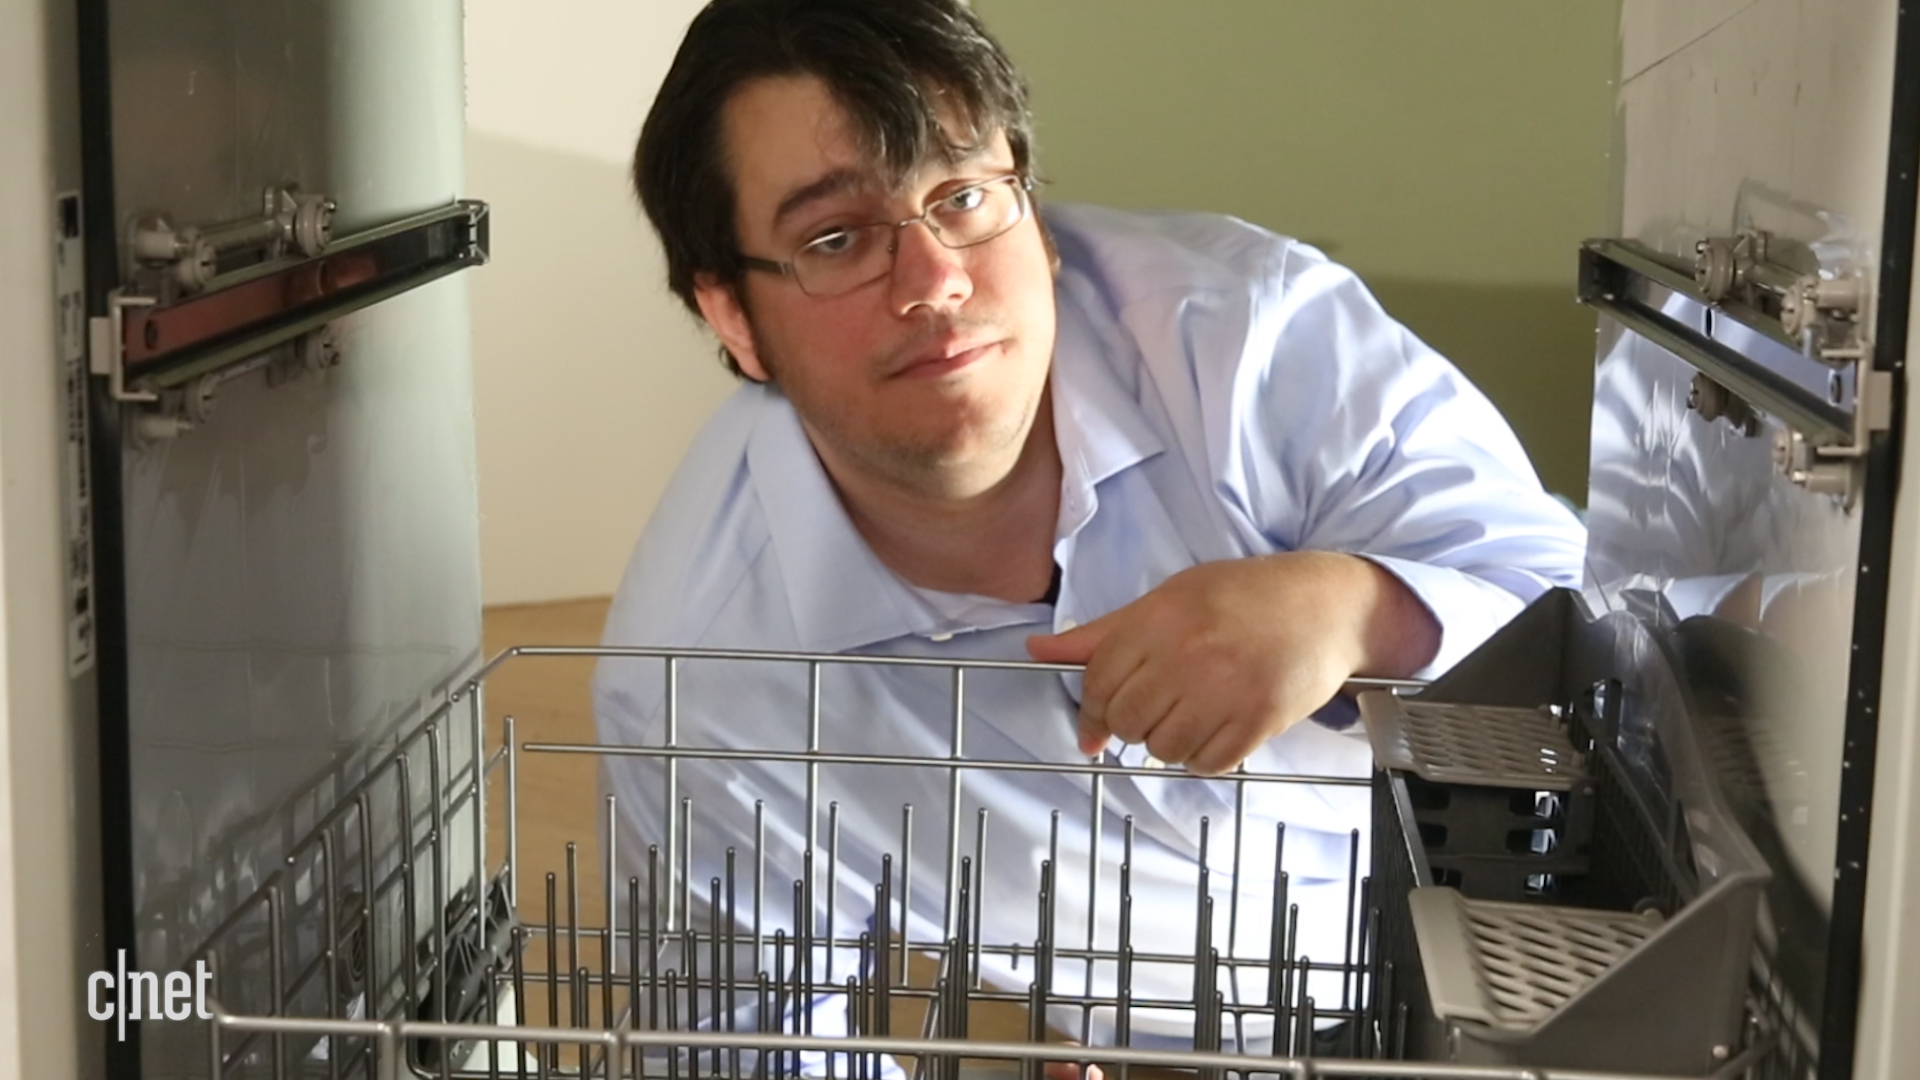 Video: Here's what to look for as you shop for your next dishwasher